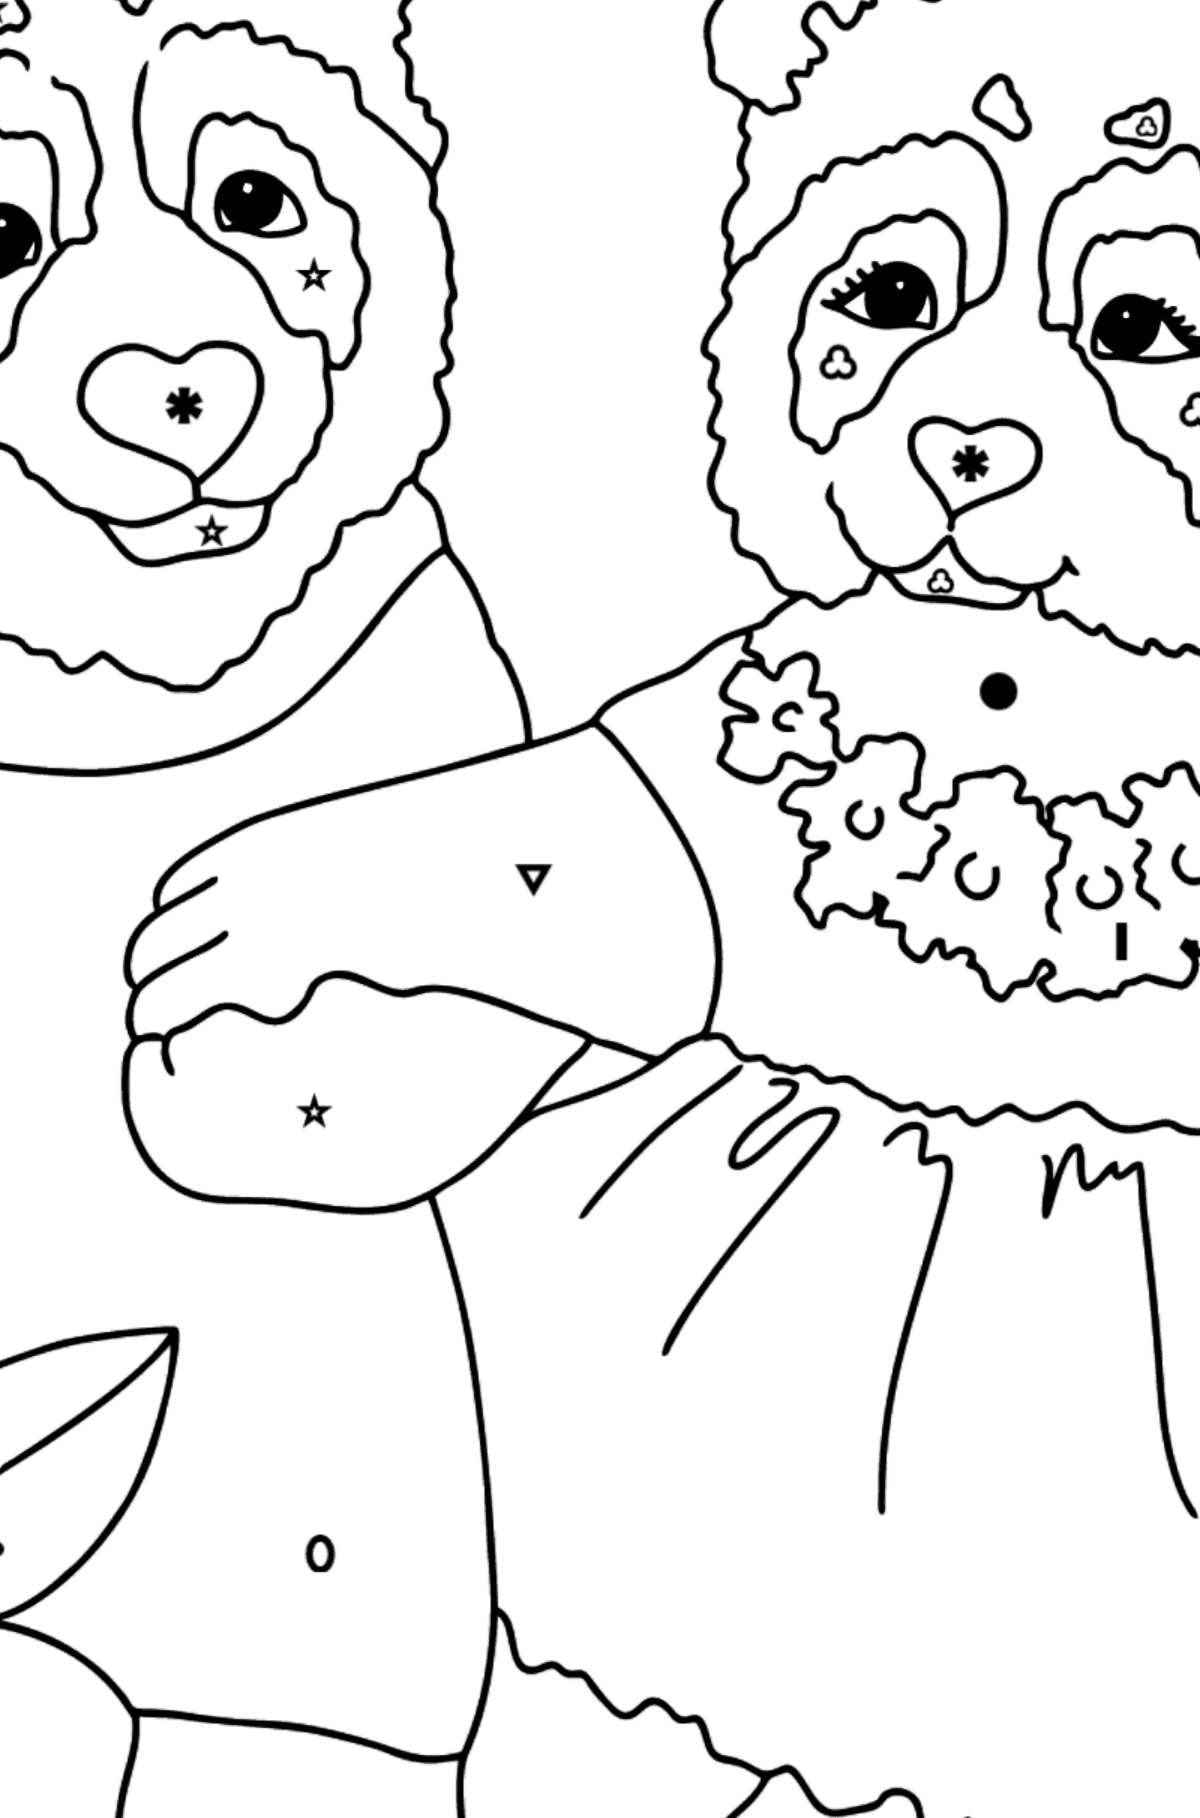 Coloring Page - Pandas are Taking a Walk - Coloring by Symbols and Geometric Shapes for Kids